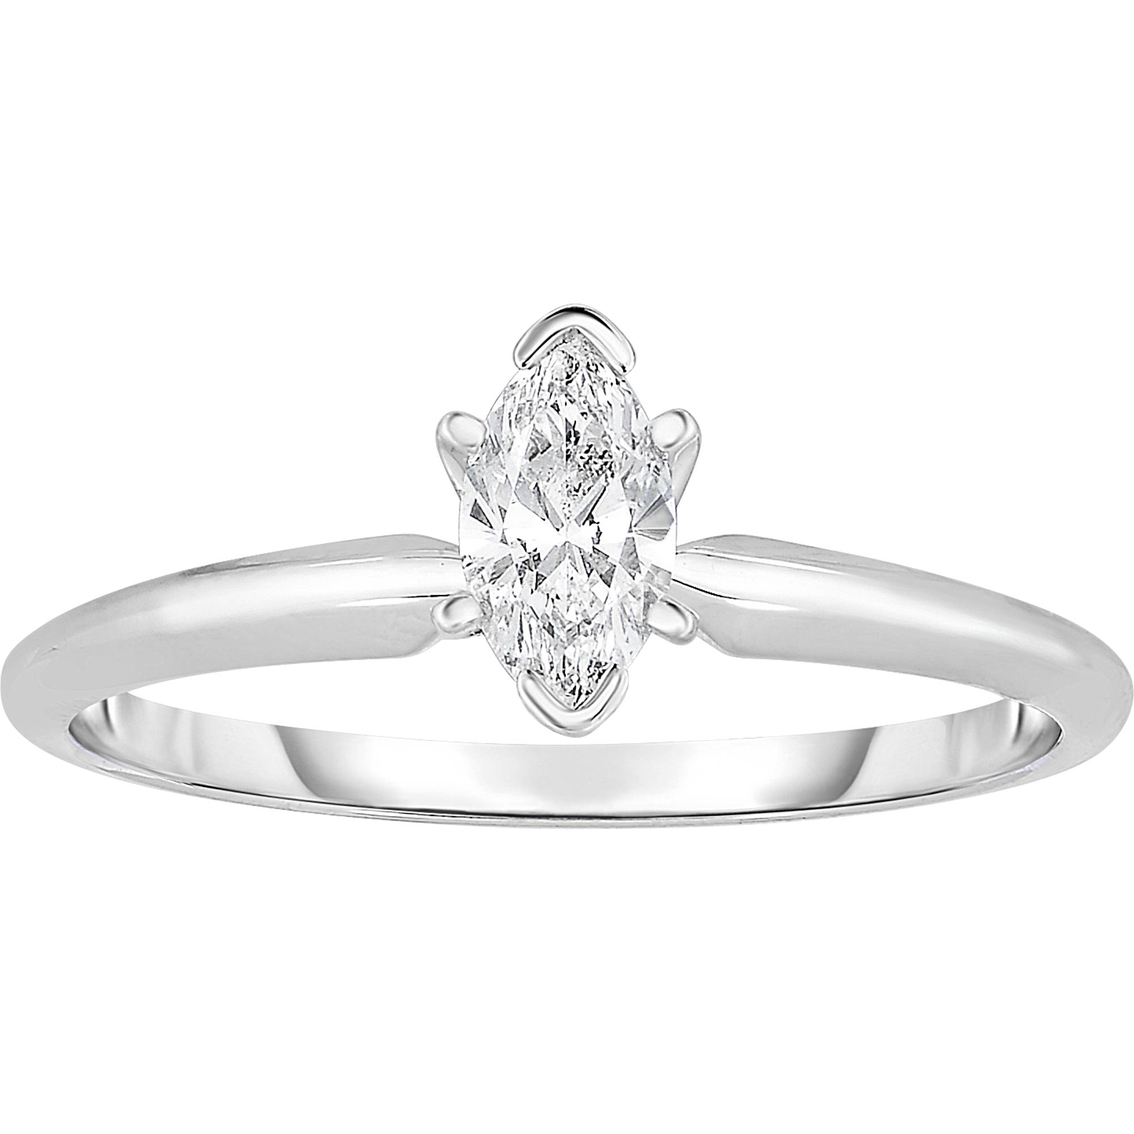 150f8acb7c 14k White Gold 1/2 Ct. Marquise Cut Diamond Solitaire Ring ...